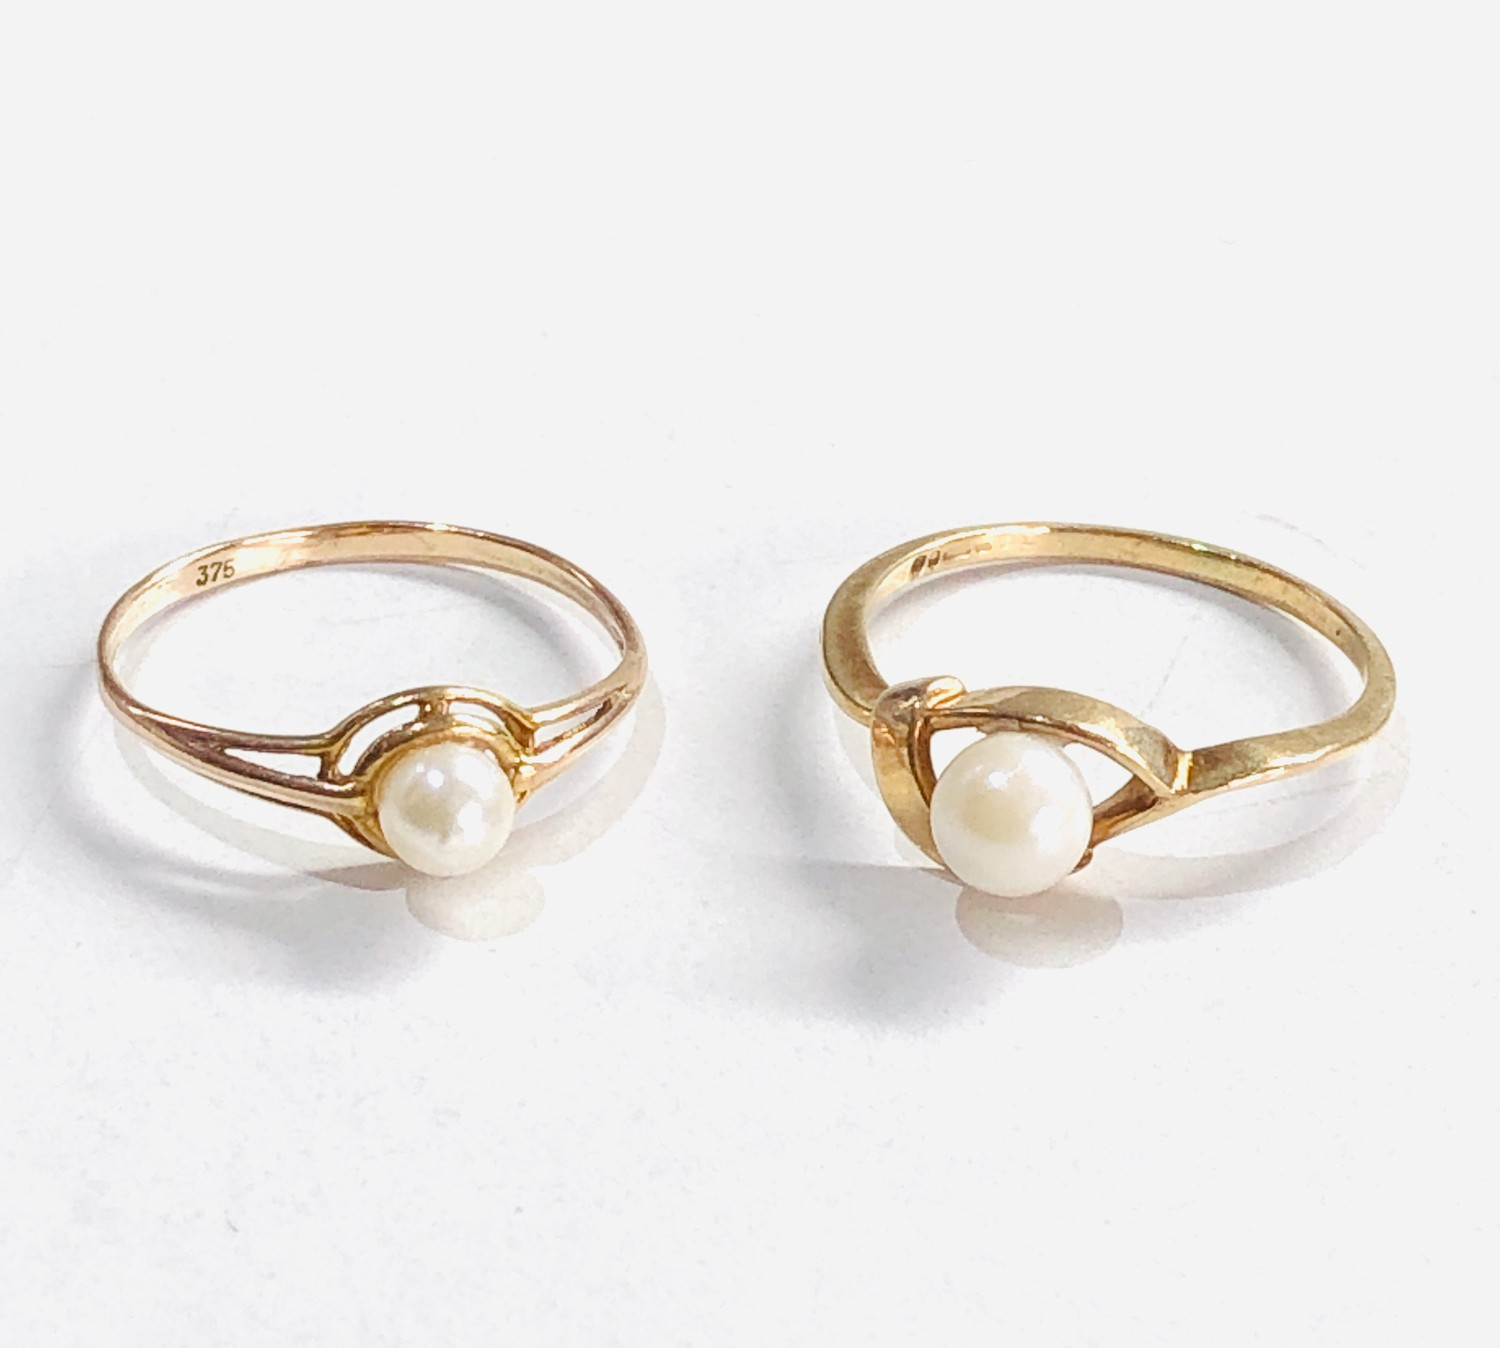 2 x 9ct gold pearl rings 1.8g - Image 2 of 3